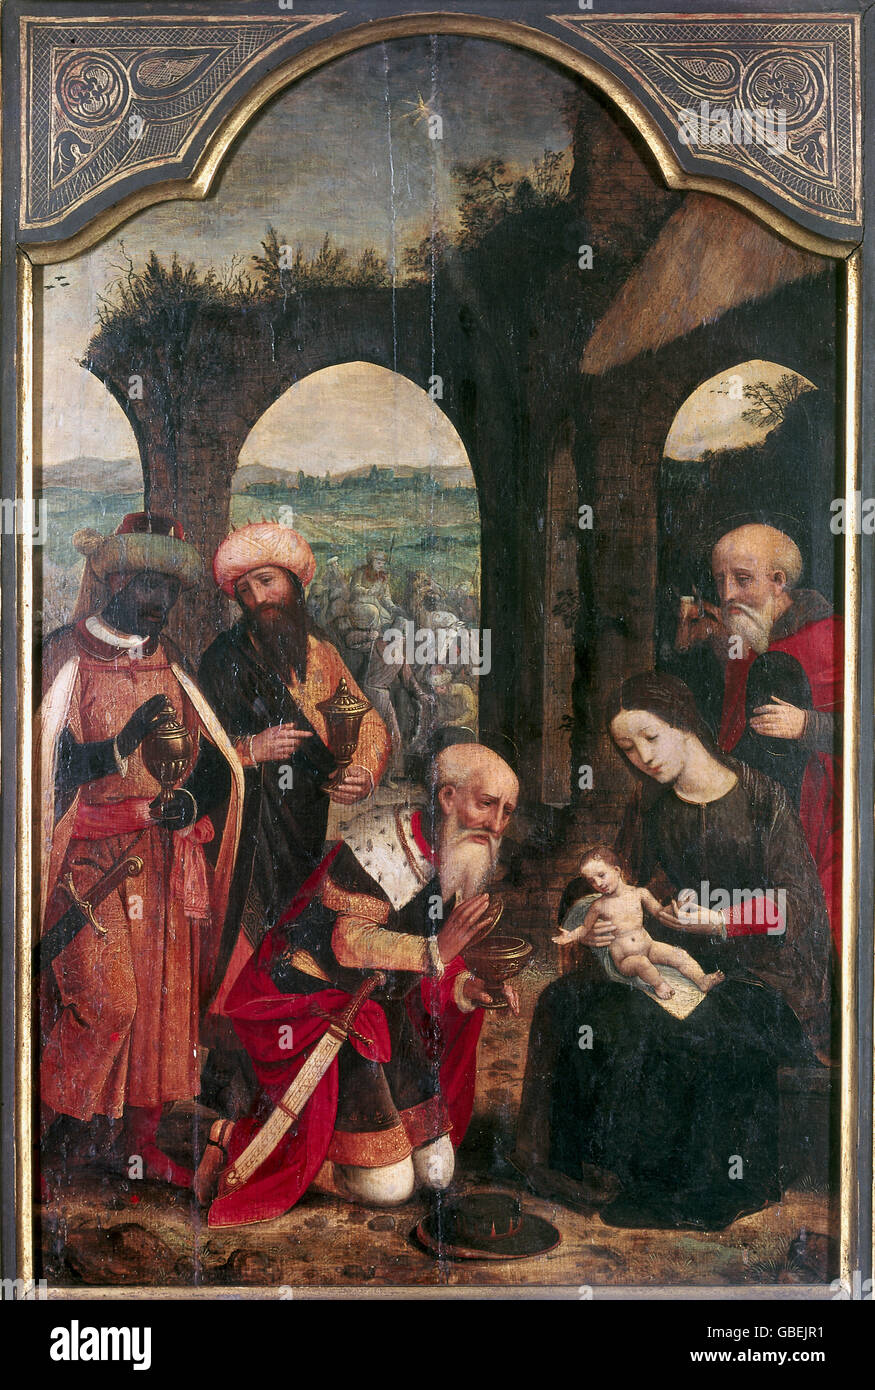 Adoration of the Magi, ca. 1530/1540 - Stock Image